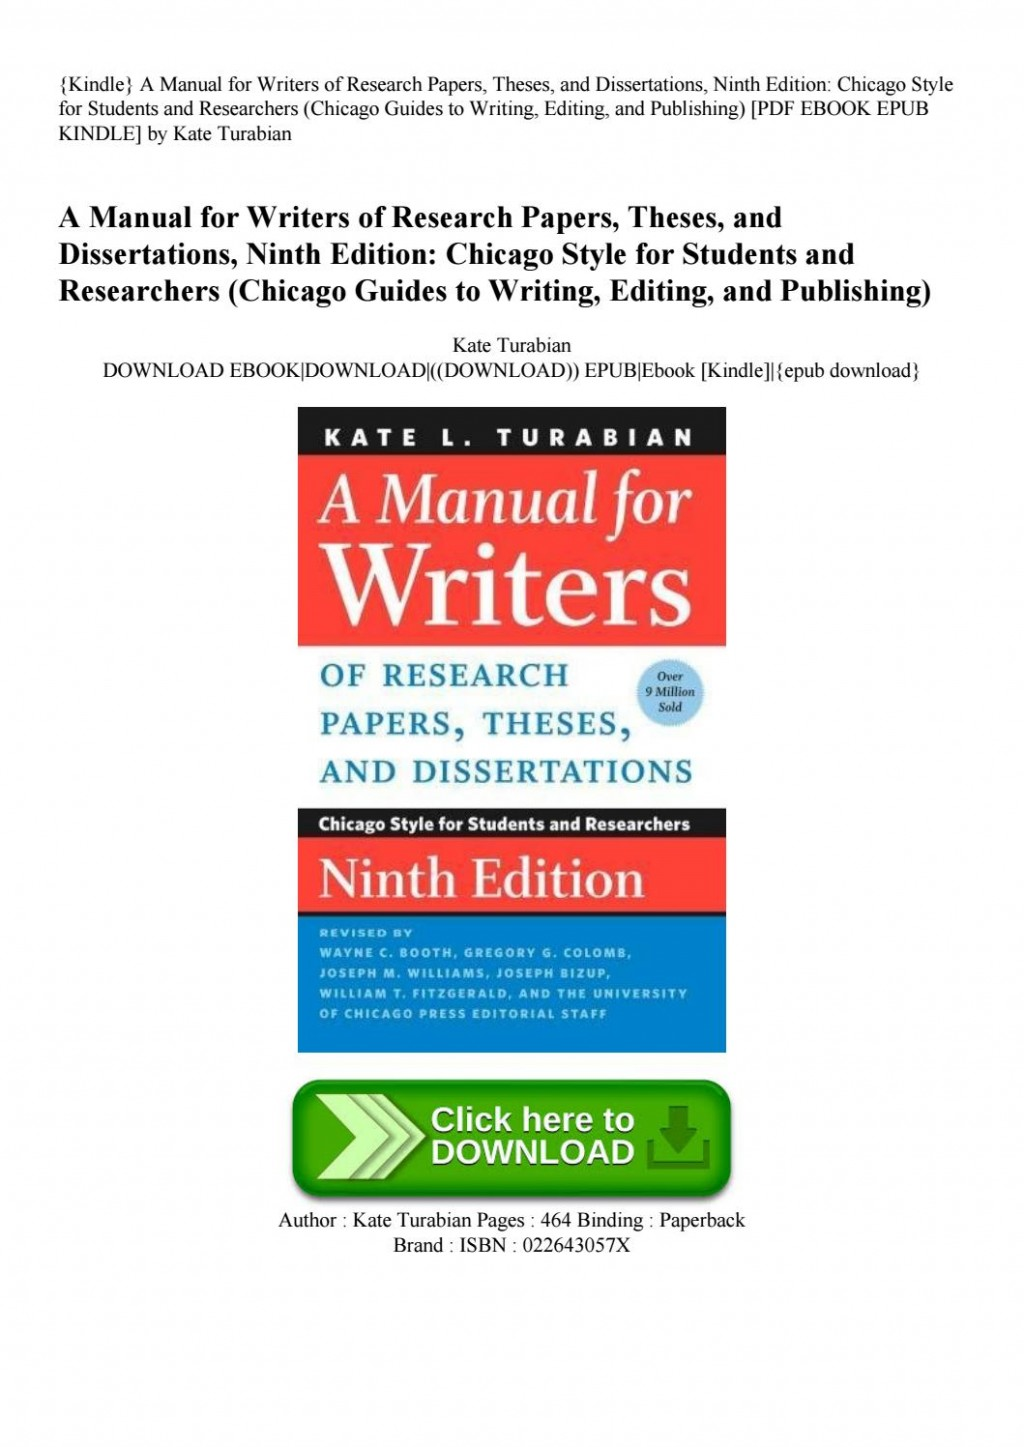 012 Research Paper Manual For Writers Of Papers Theses And Dissertations Page 1 Magnificent A Amazon 9th Edition Pdf 8th 13 Large